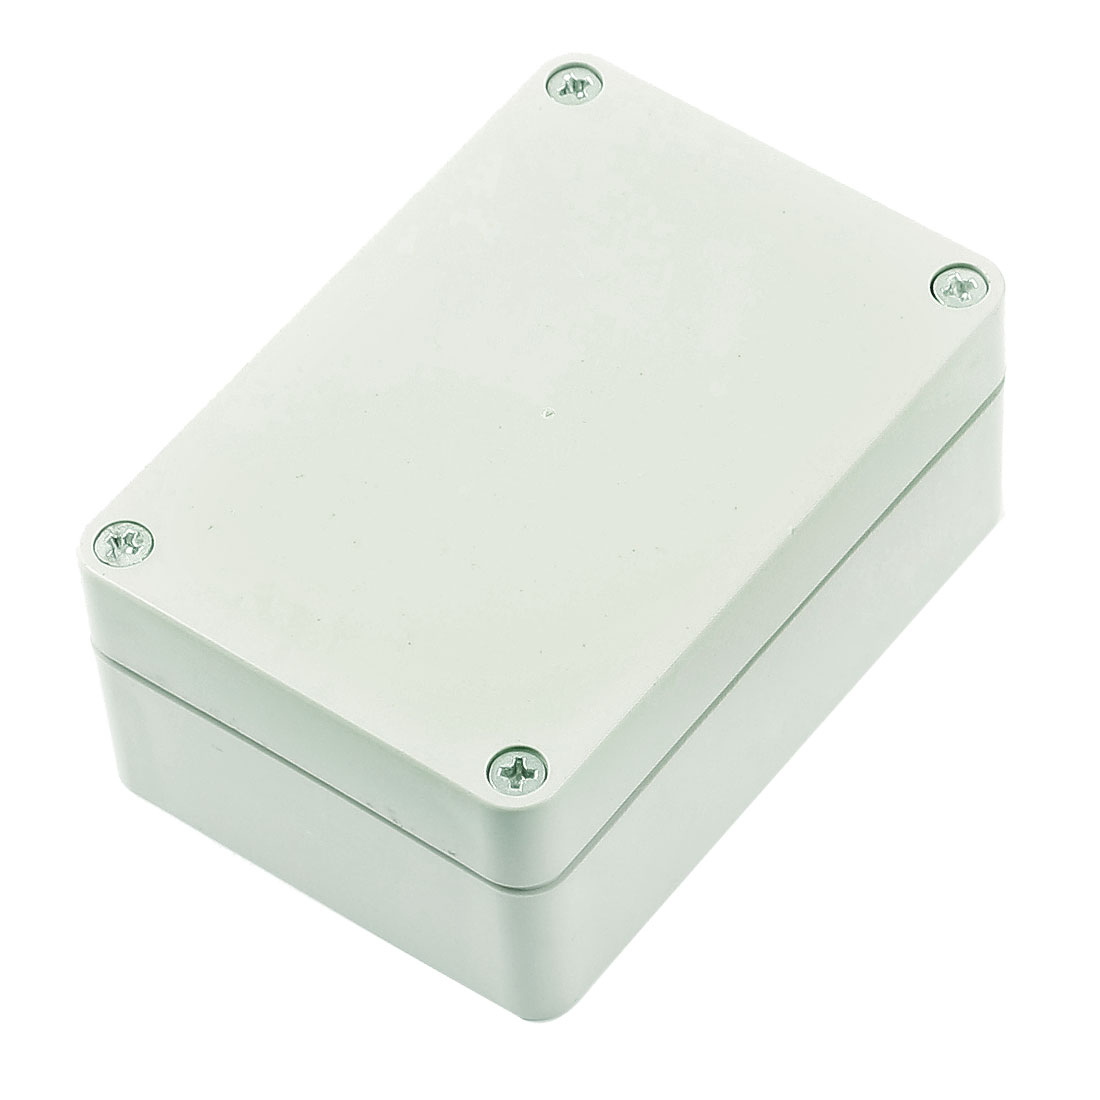 Surface Mount Dustproof IP65 Plastic Sealed Electric Junction Enclose Box Power Protection Case 83mm x 58mm x 35mm